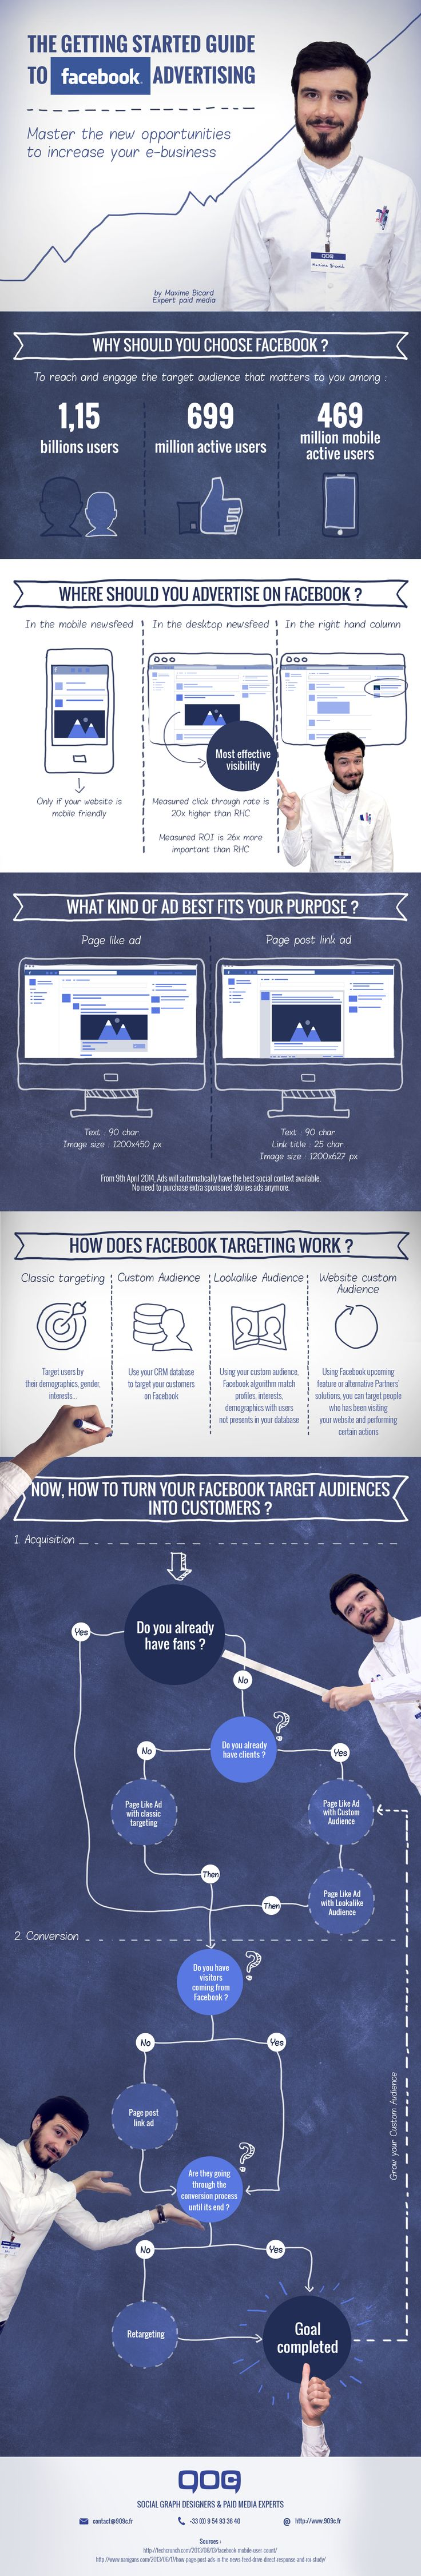 Infographic: Getting started with Facebook advertising